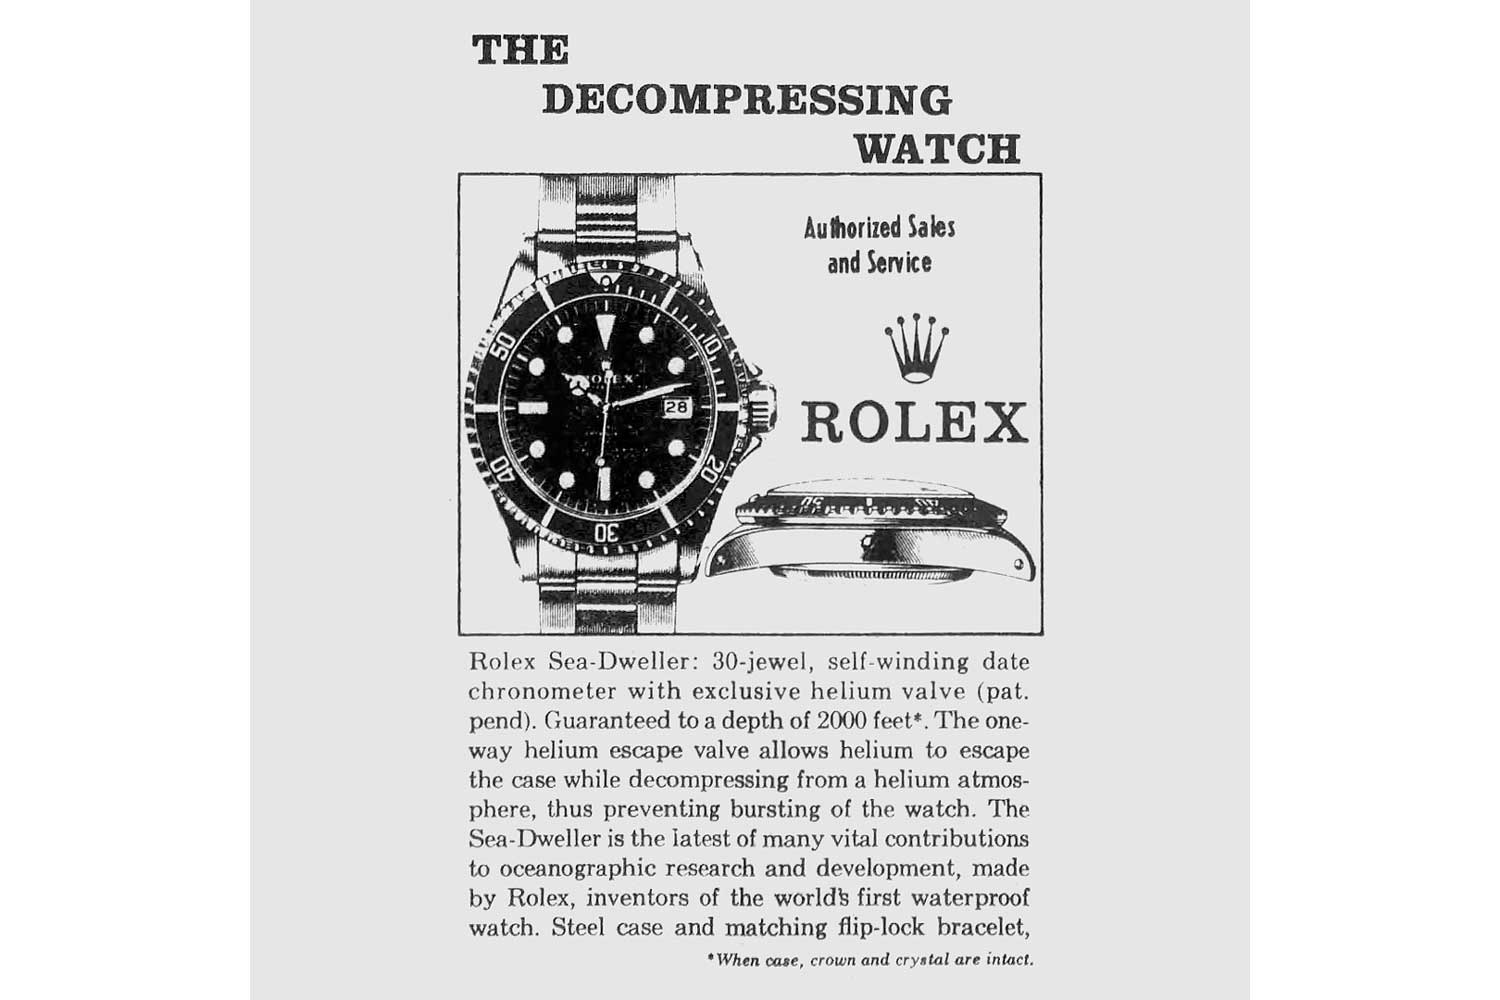 One of the first advertisements for the Rolex Sea-Dweller from the 1970s